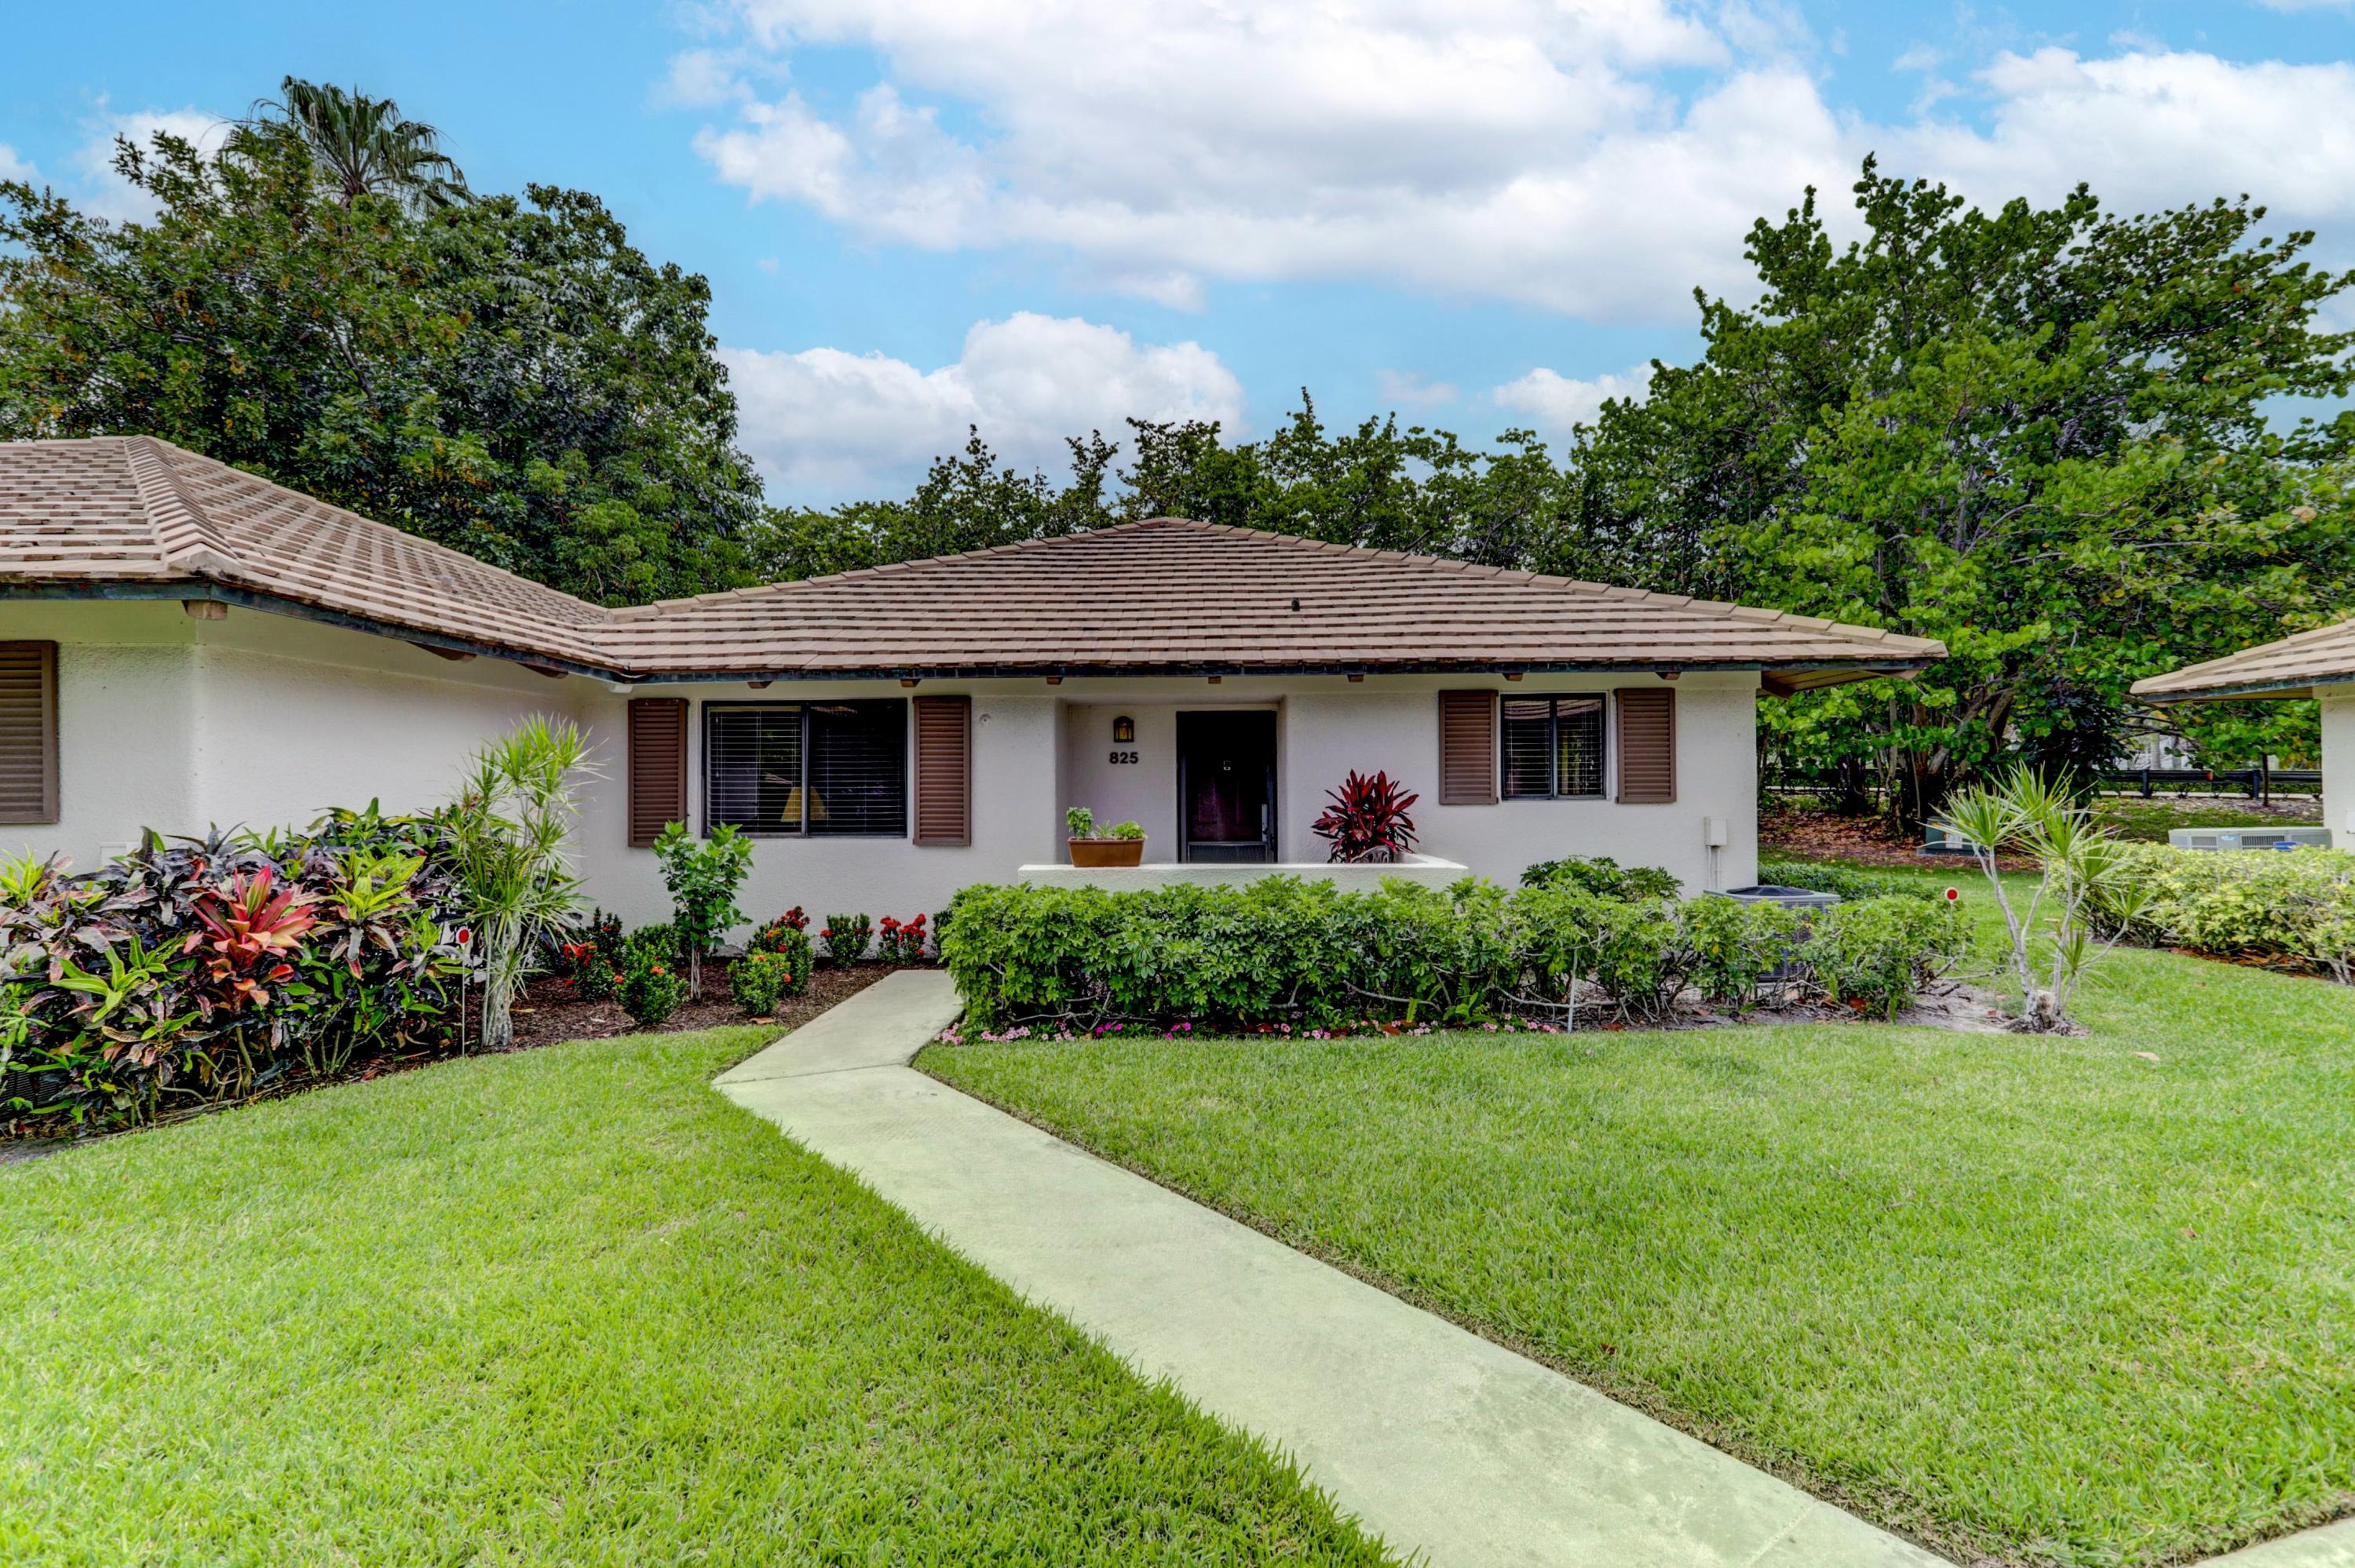 NICELY FURNISHED AND UPDATED 2 BEDROOM, 2 BATH IN PGA NATIONAL.  NO CLUB PRIVILEGES AVAILABLE.  COMMUNITY HAS A POOL.  CLOSE TO PGA SPA, SHOPPING, RESTAURANTS.  AVAILABLE MAY 14 THROUGH NOVEMBER 1.